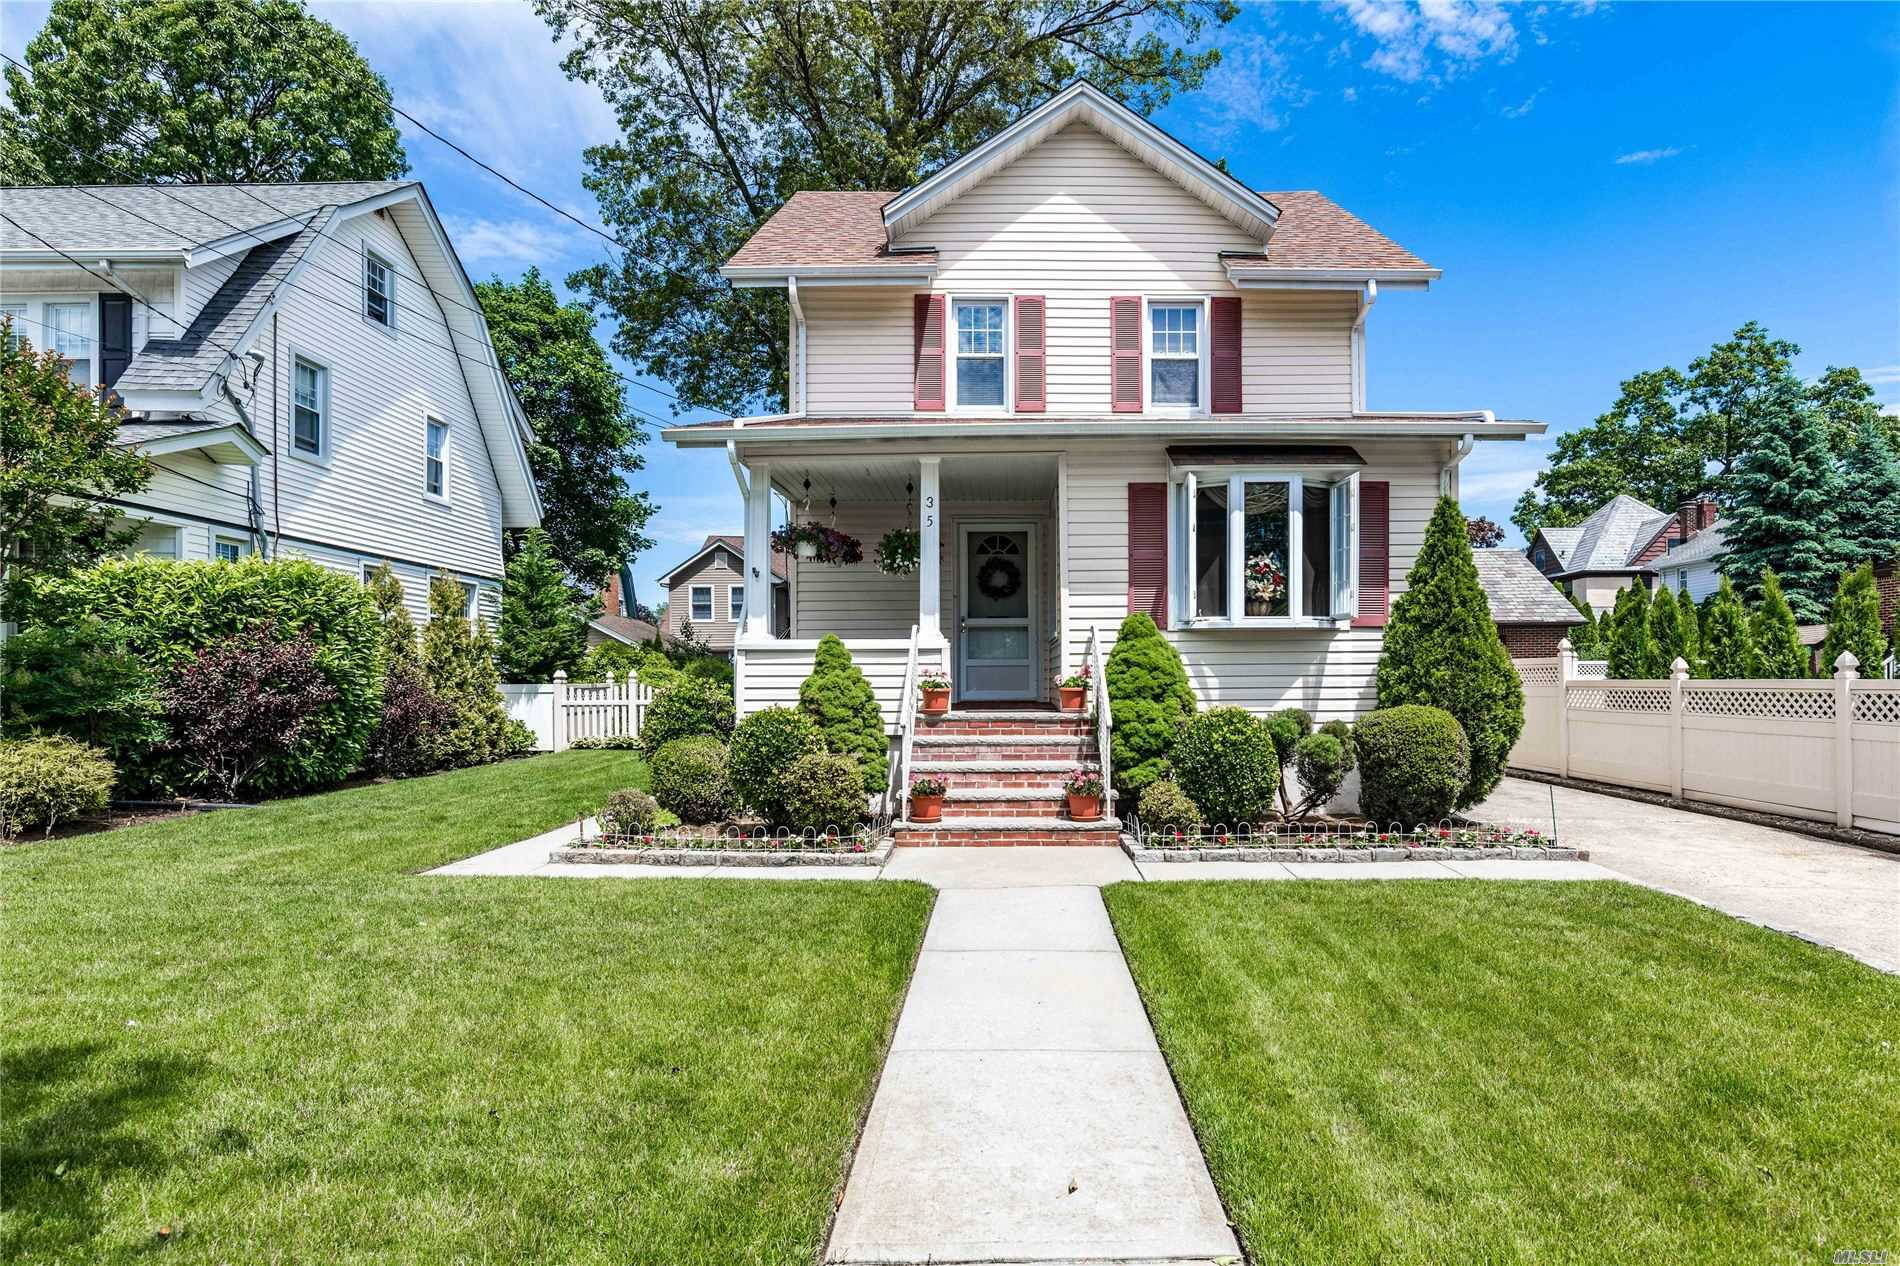 35 Manor Rd - Lynbrook, New York